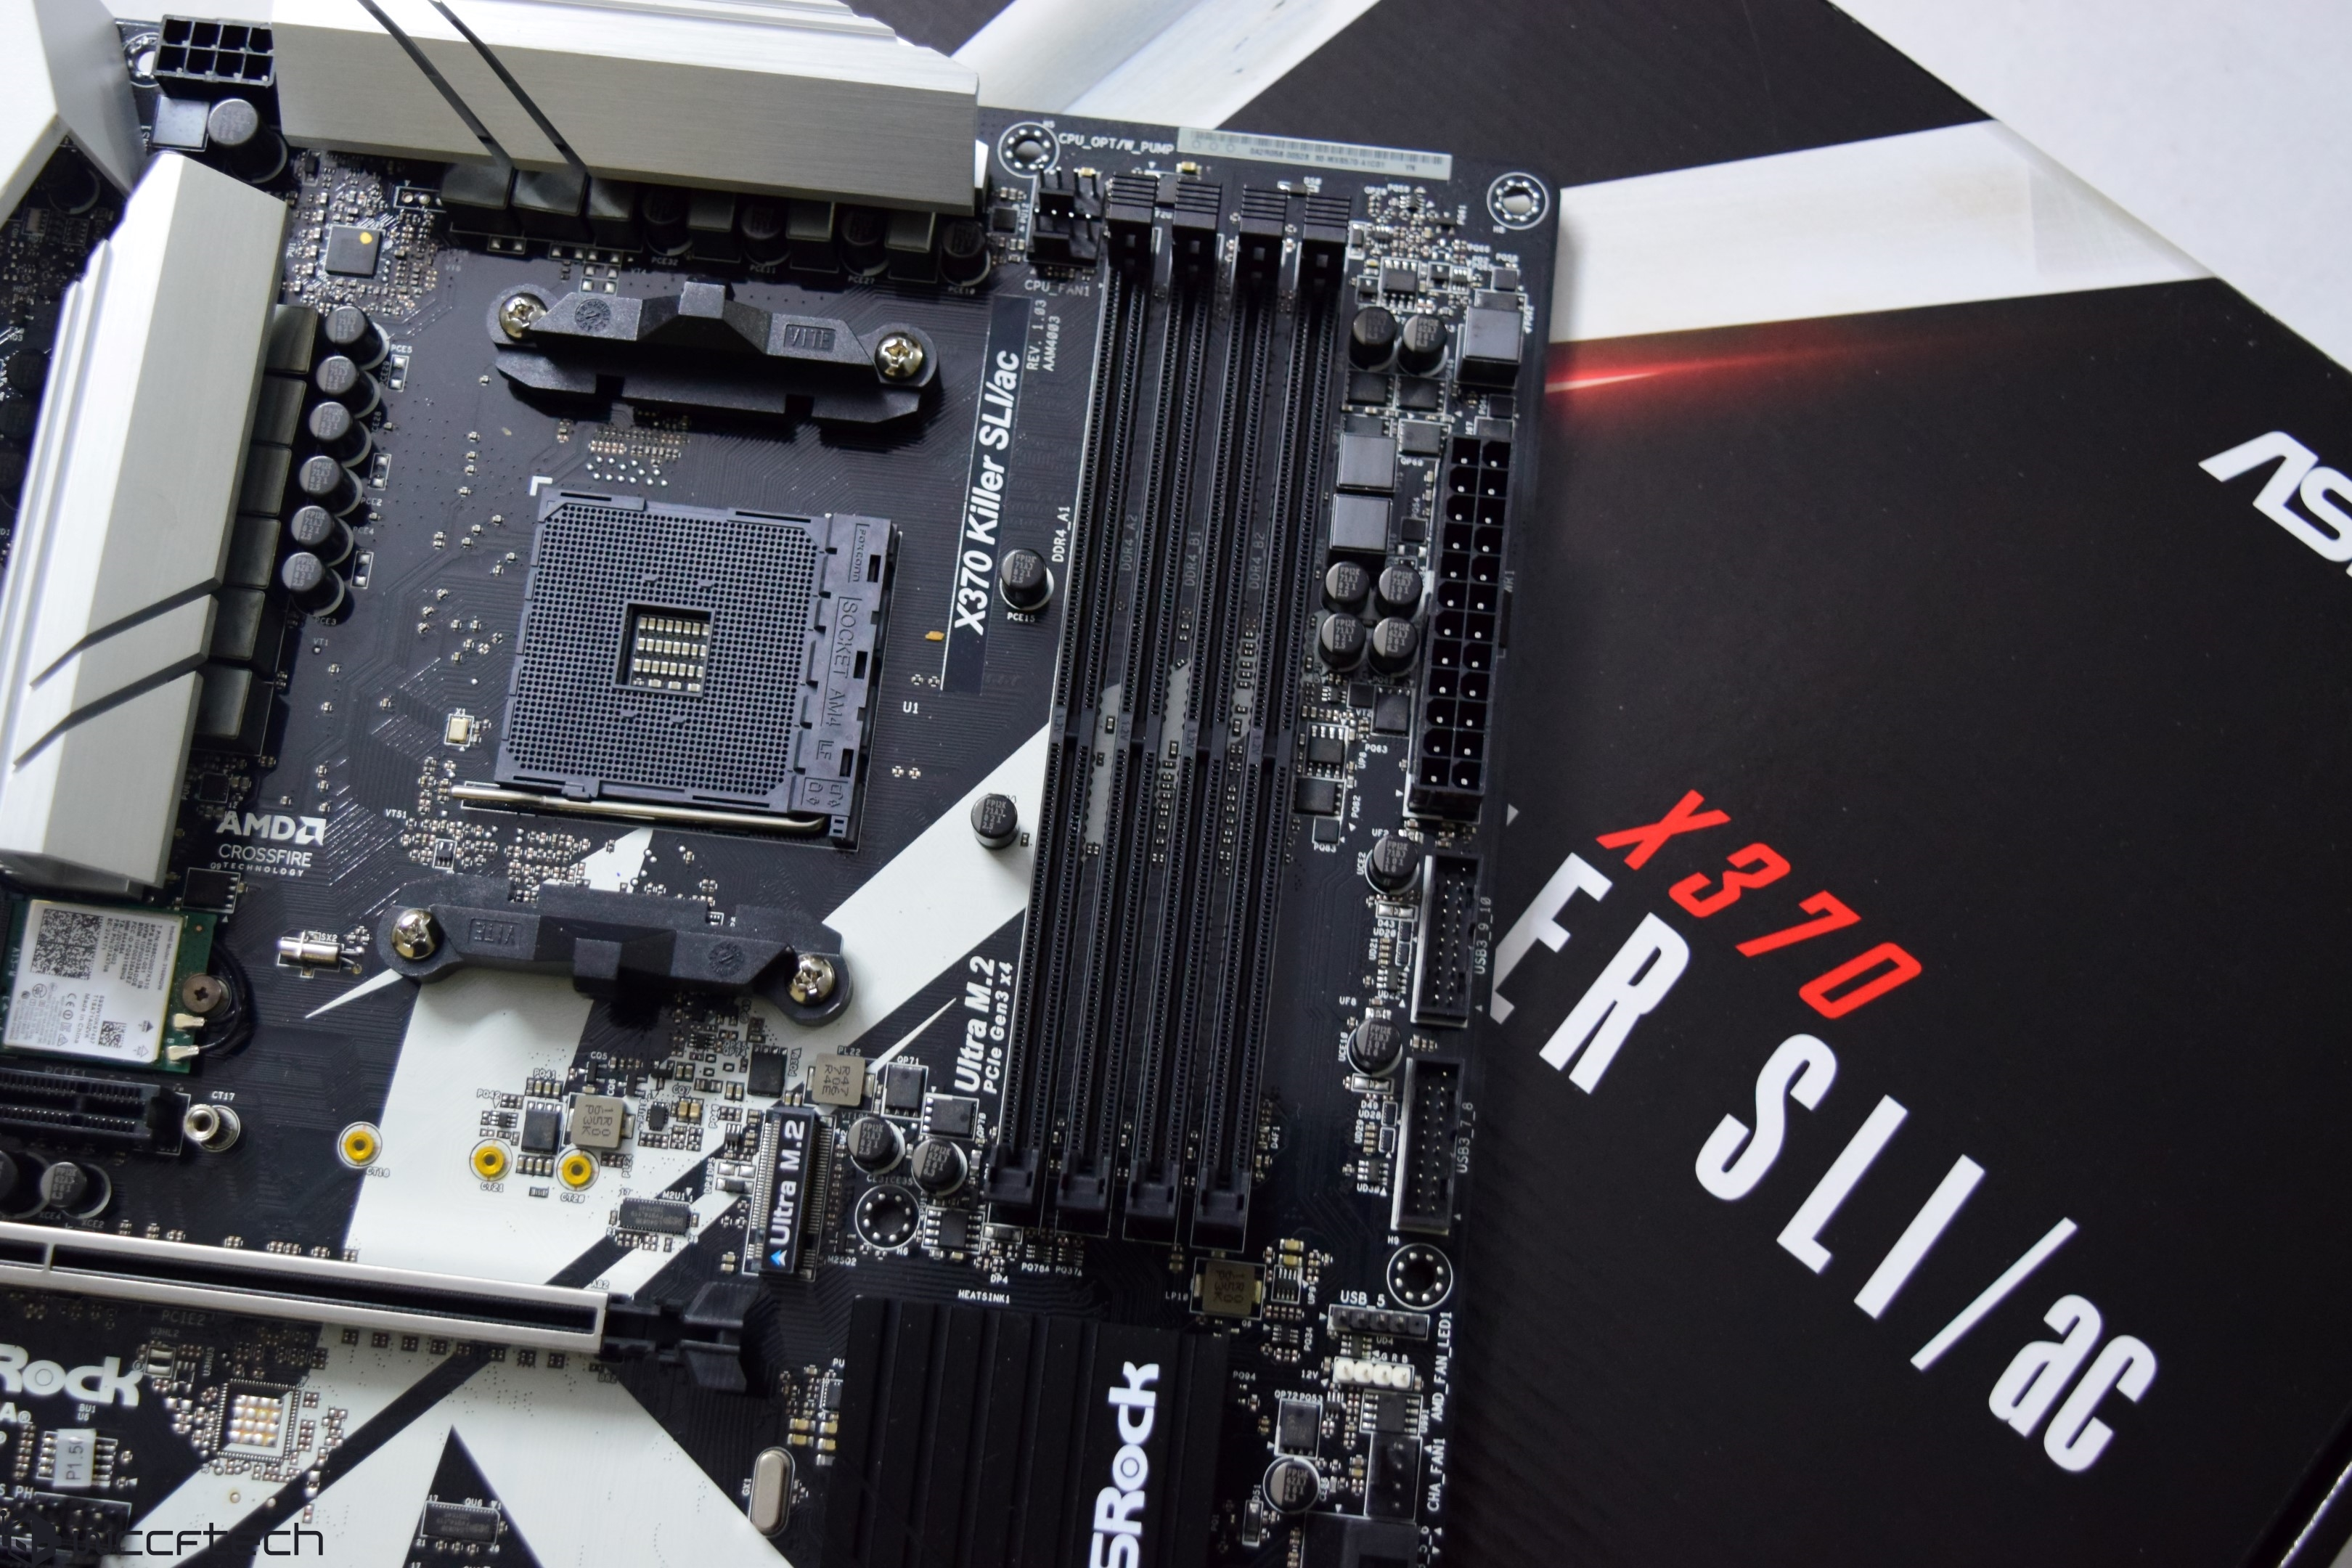 AMD Ryzen 5 1600X 6 Core / 12 Thread CPU Review With ASRock